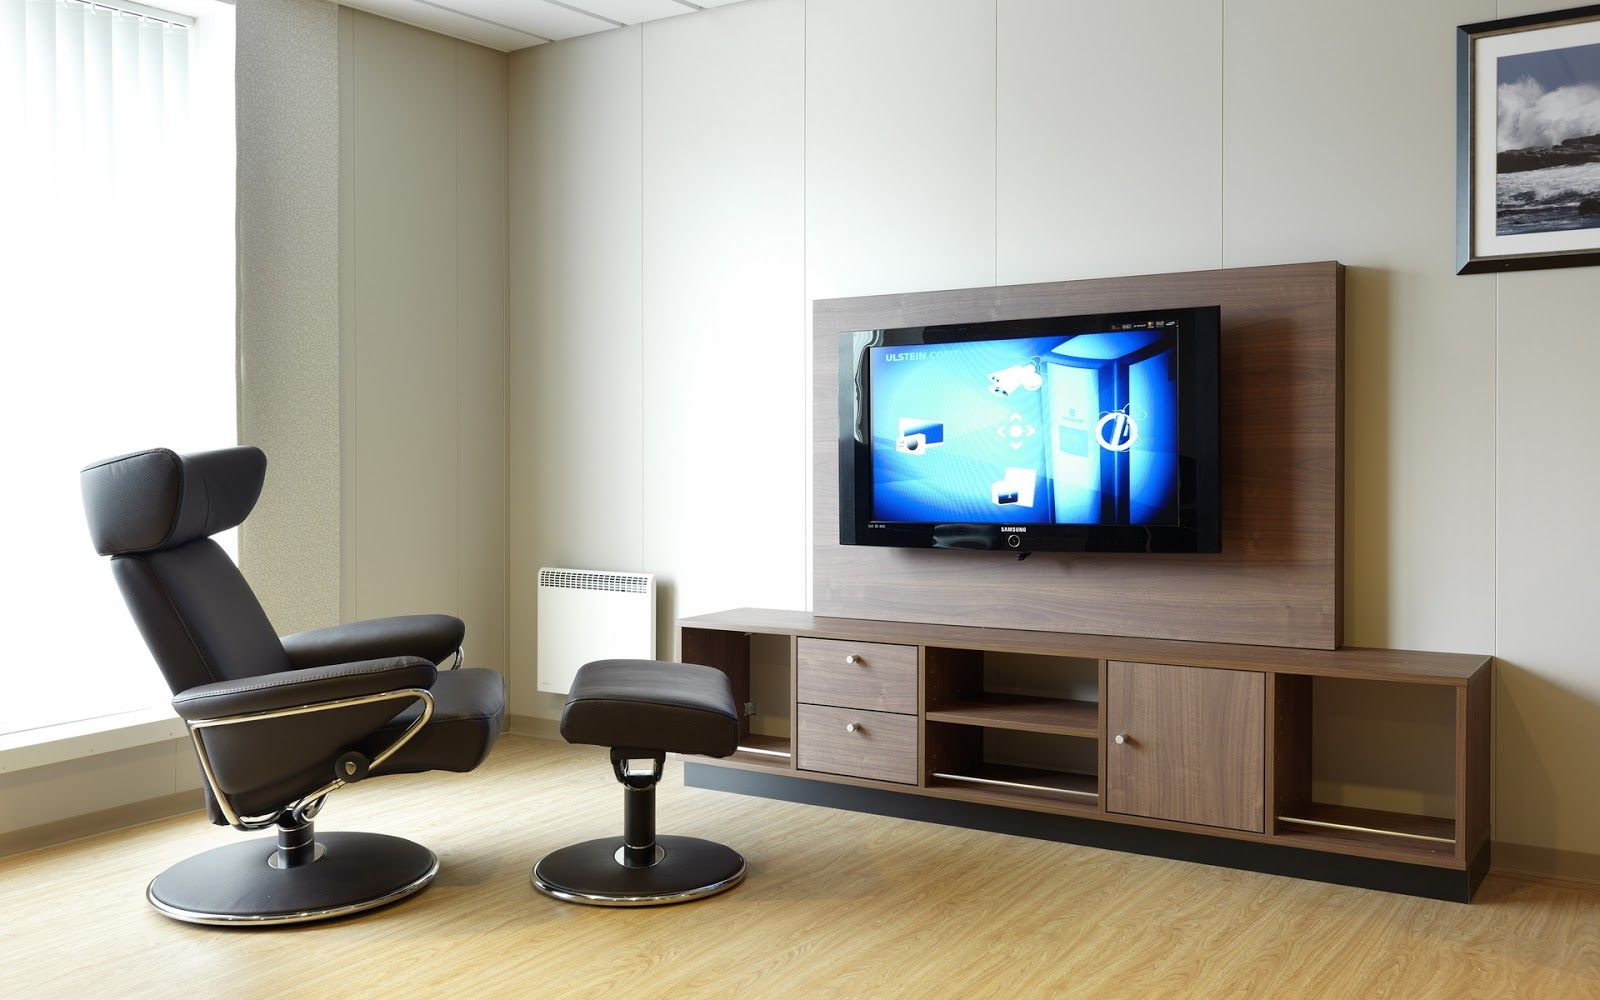 Outstanding TV Room Interior Design 1600 x 1000 · 198 kB · jpeg